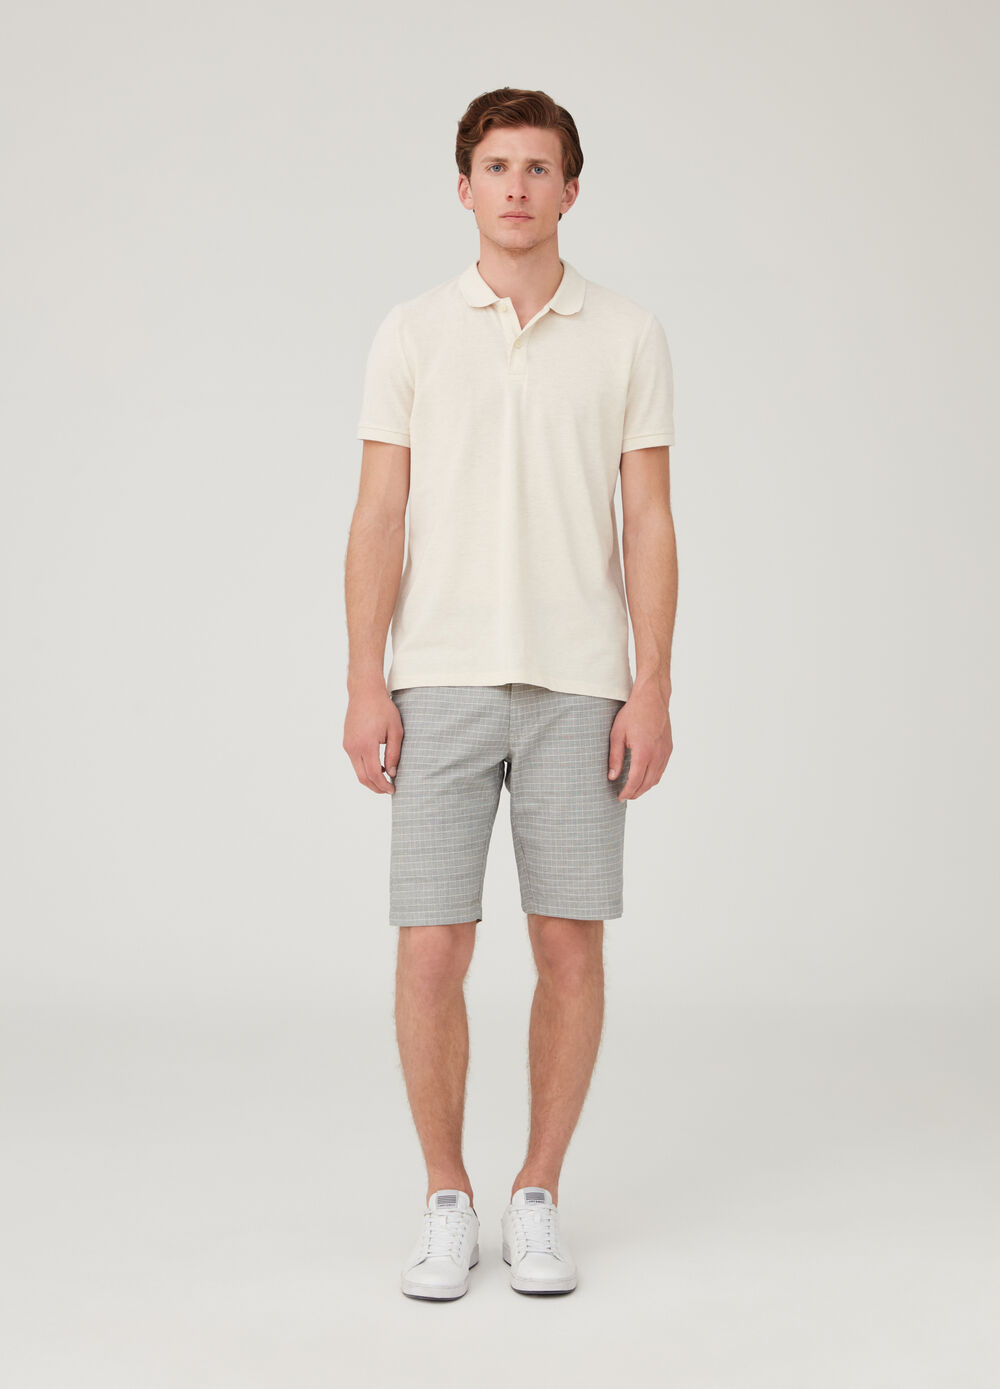 Shorts chinos regular fit de cuadros